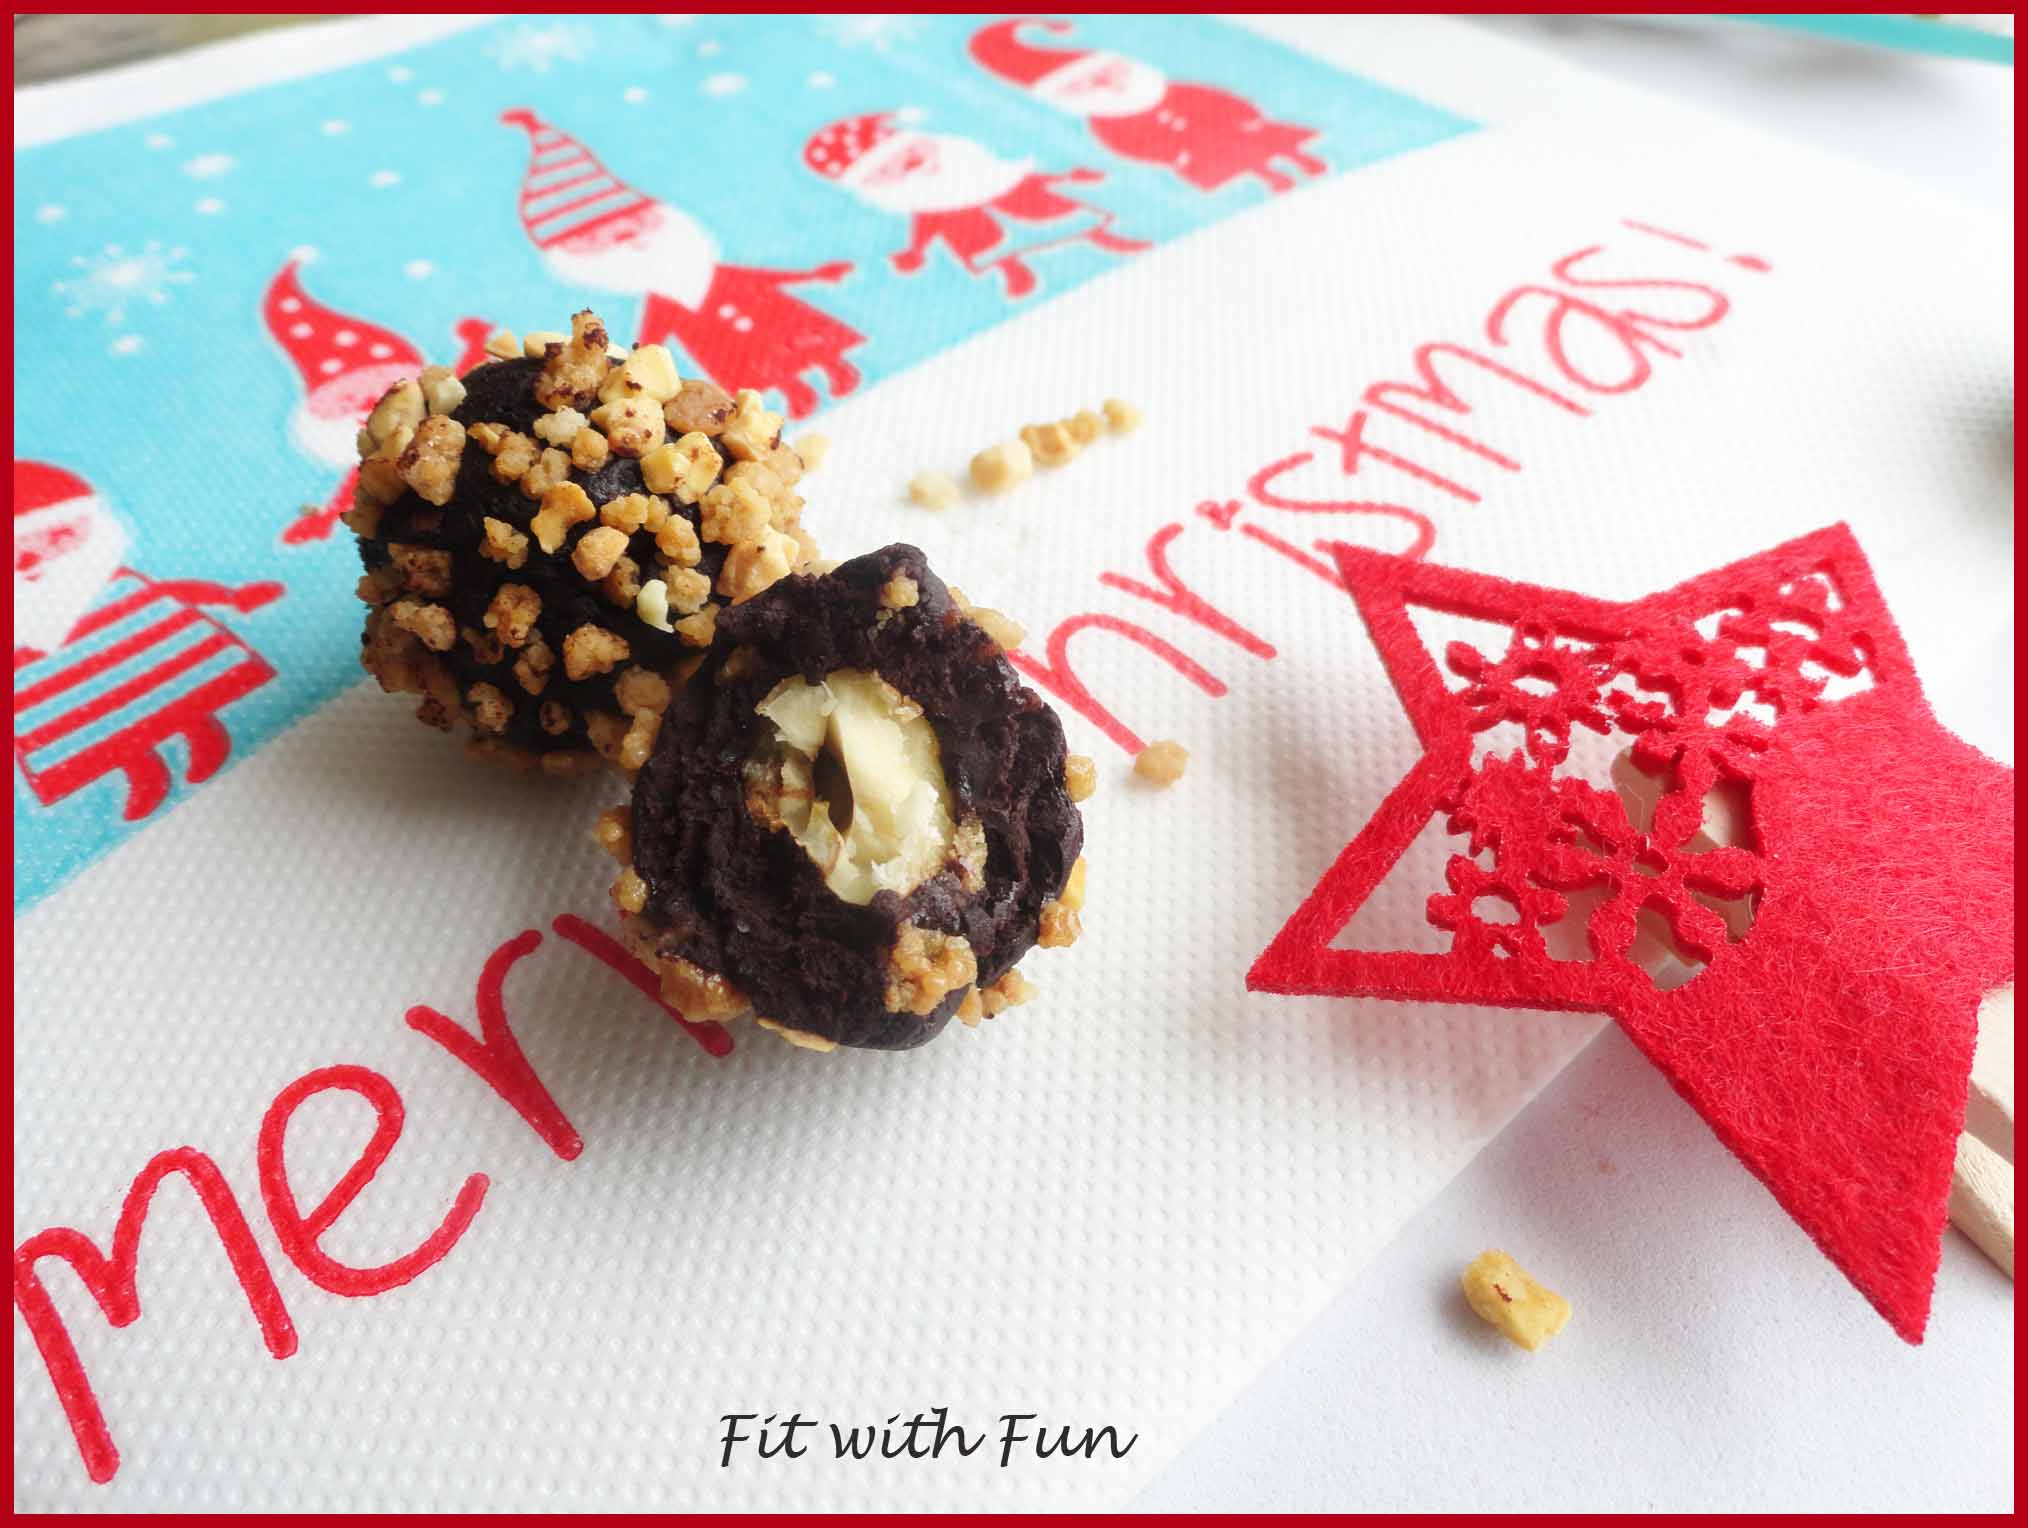 Cioccolatini Ferrero Rocher Fit